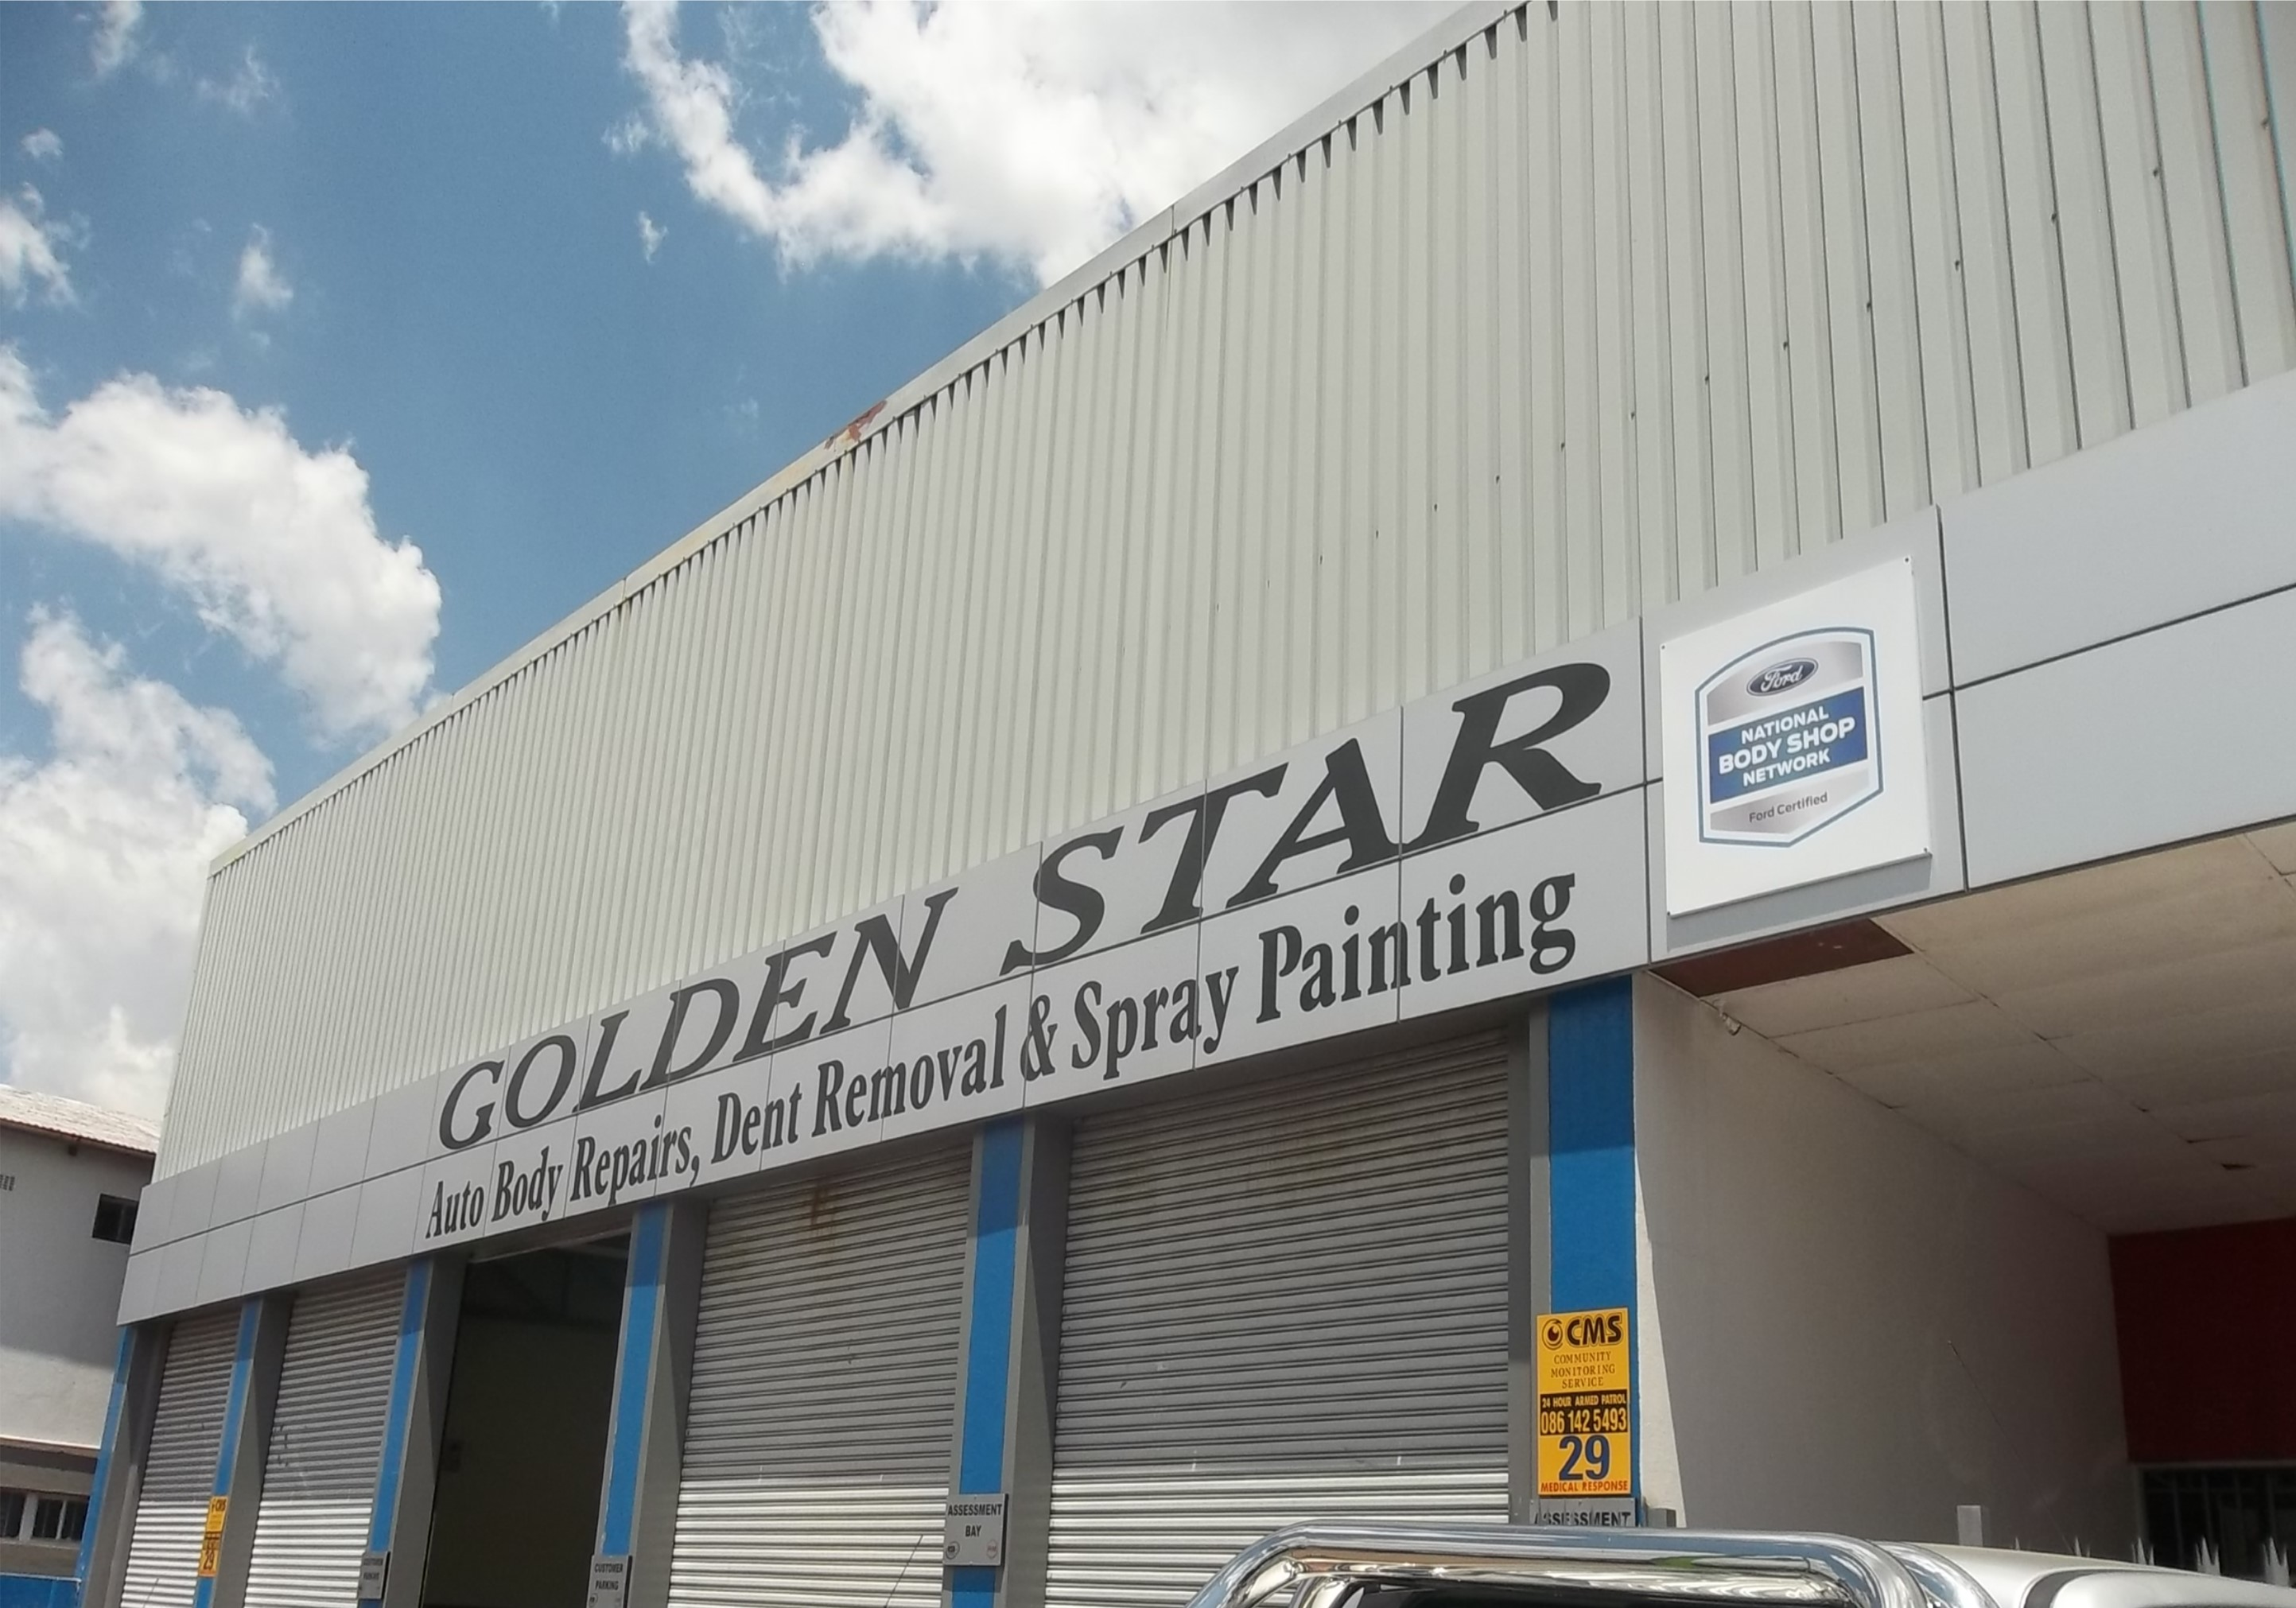 Golden Star Autobody